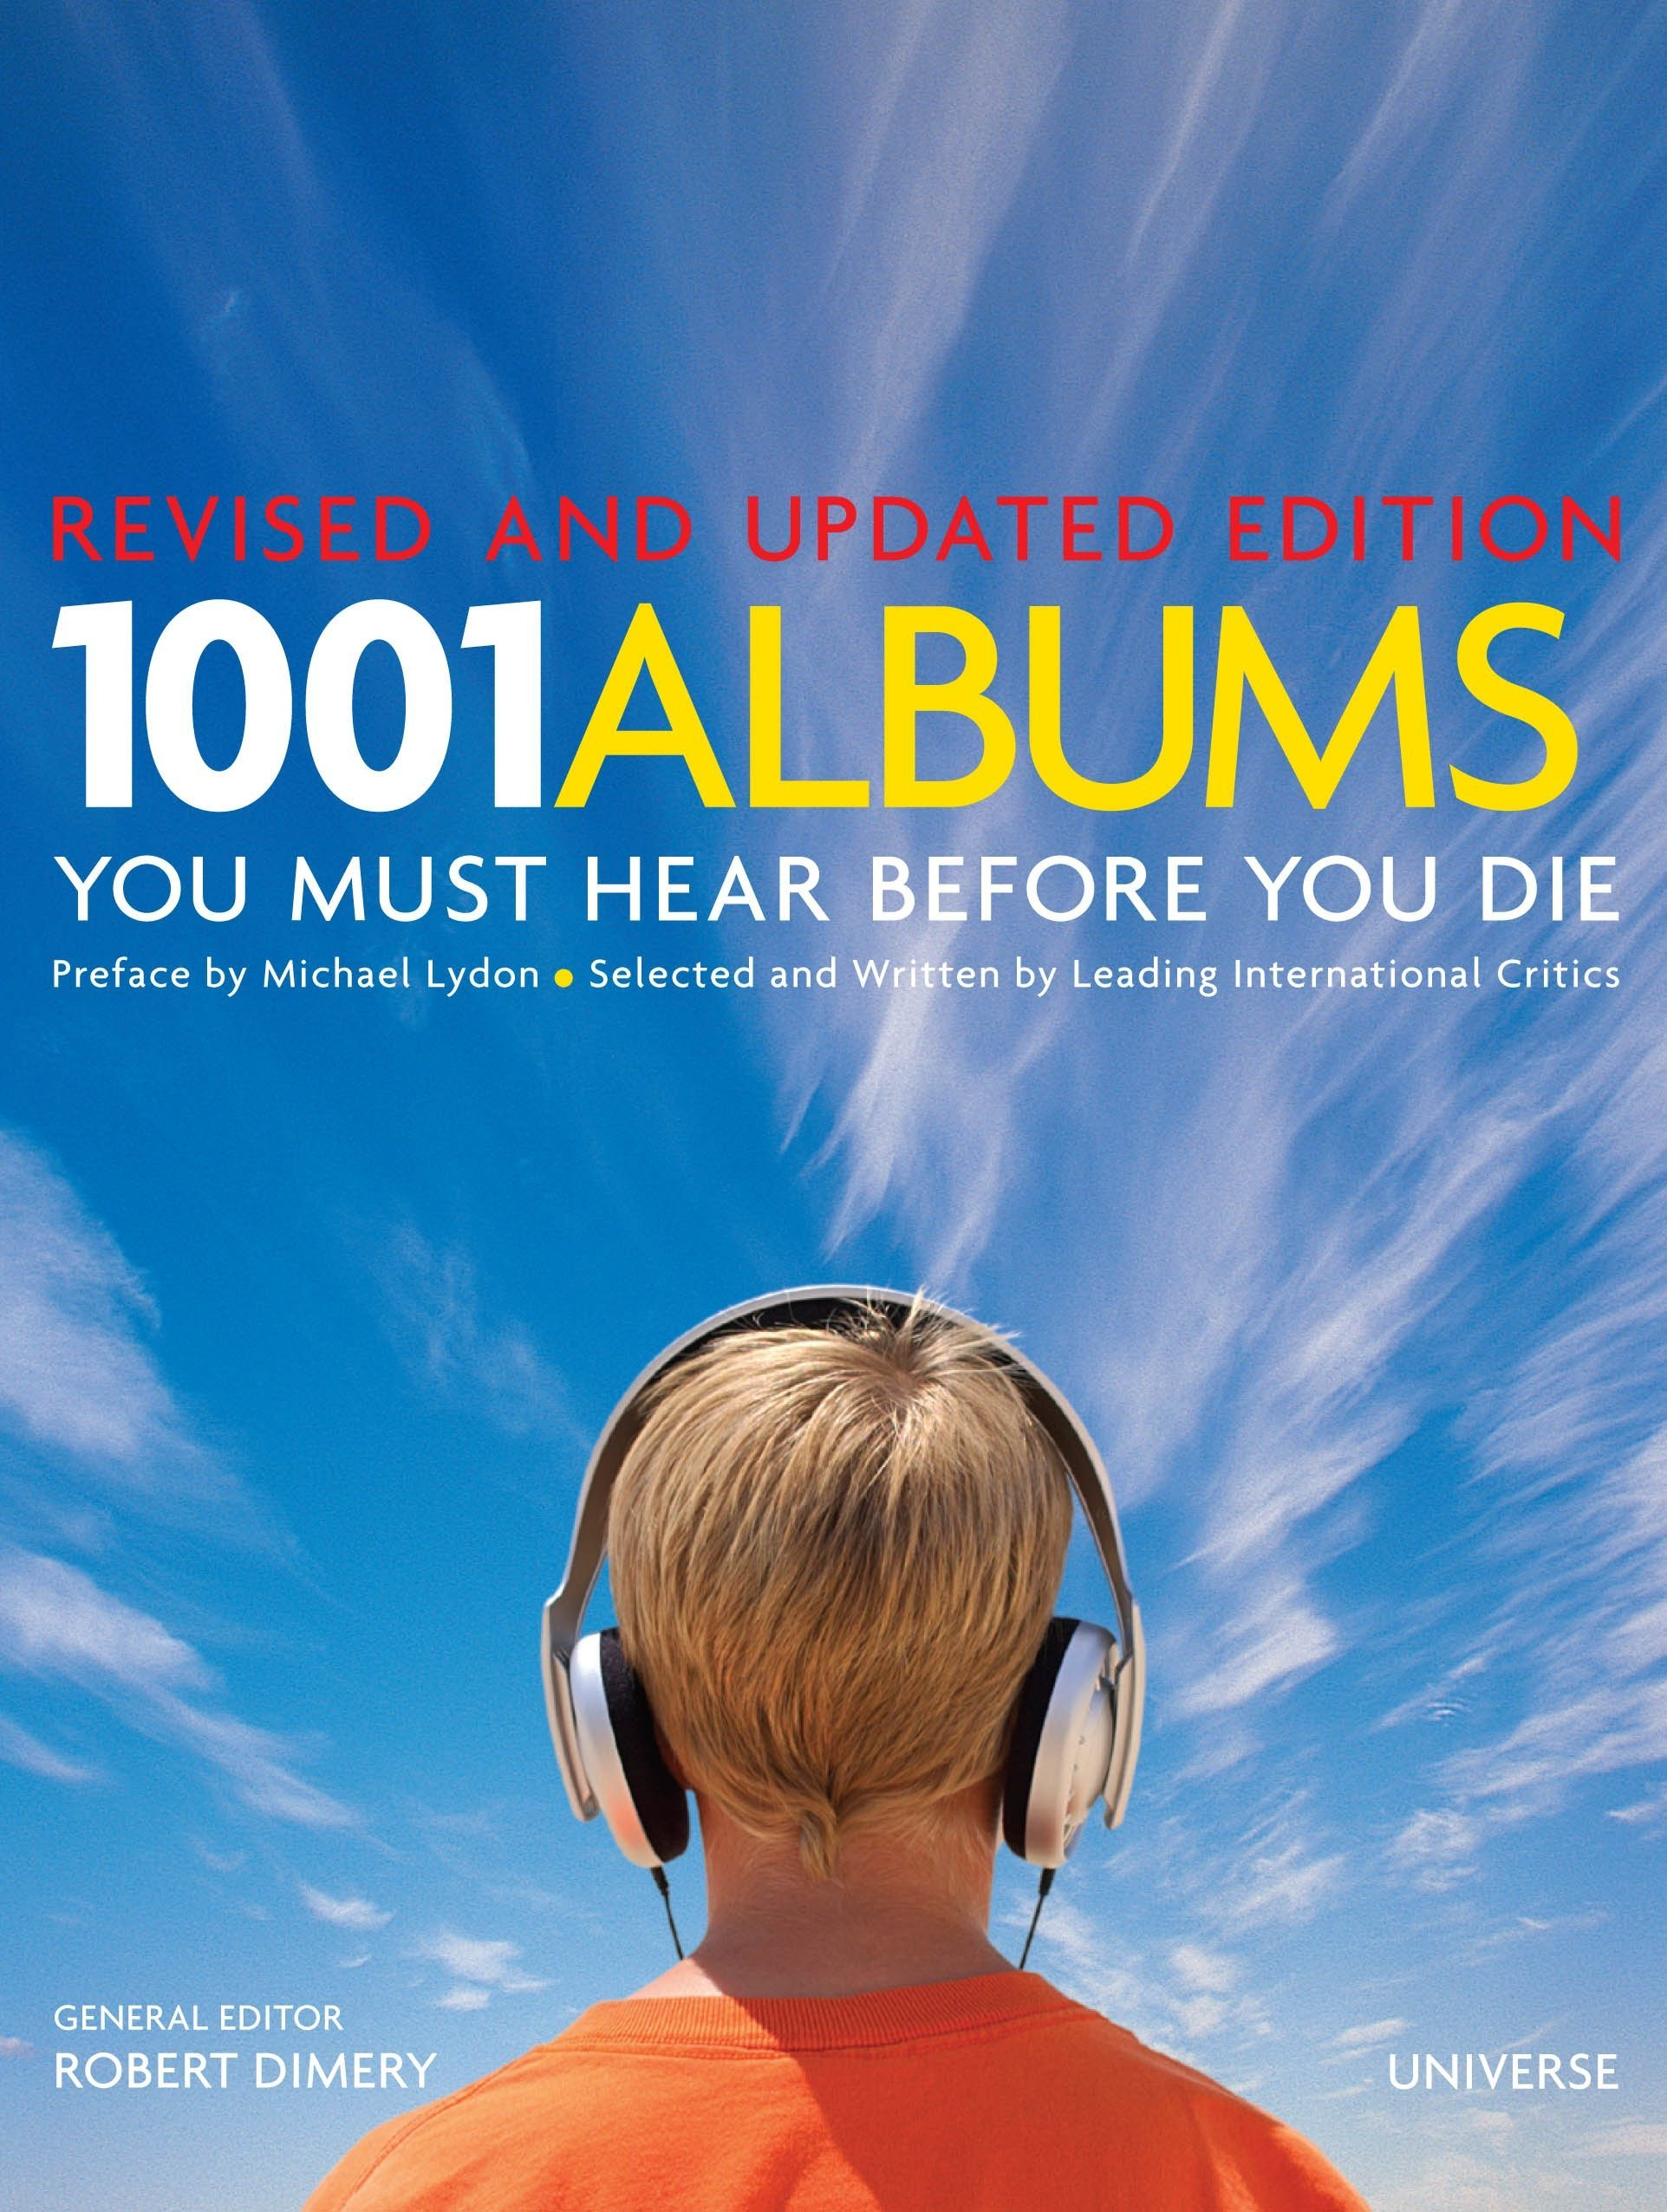 1001 Albums You Must Hear Before You Die: Revised and Updated Edition:  Robert Dimery, Michael Lydon: 9780789320742: Amazon.com: Books